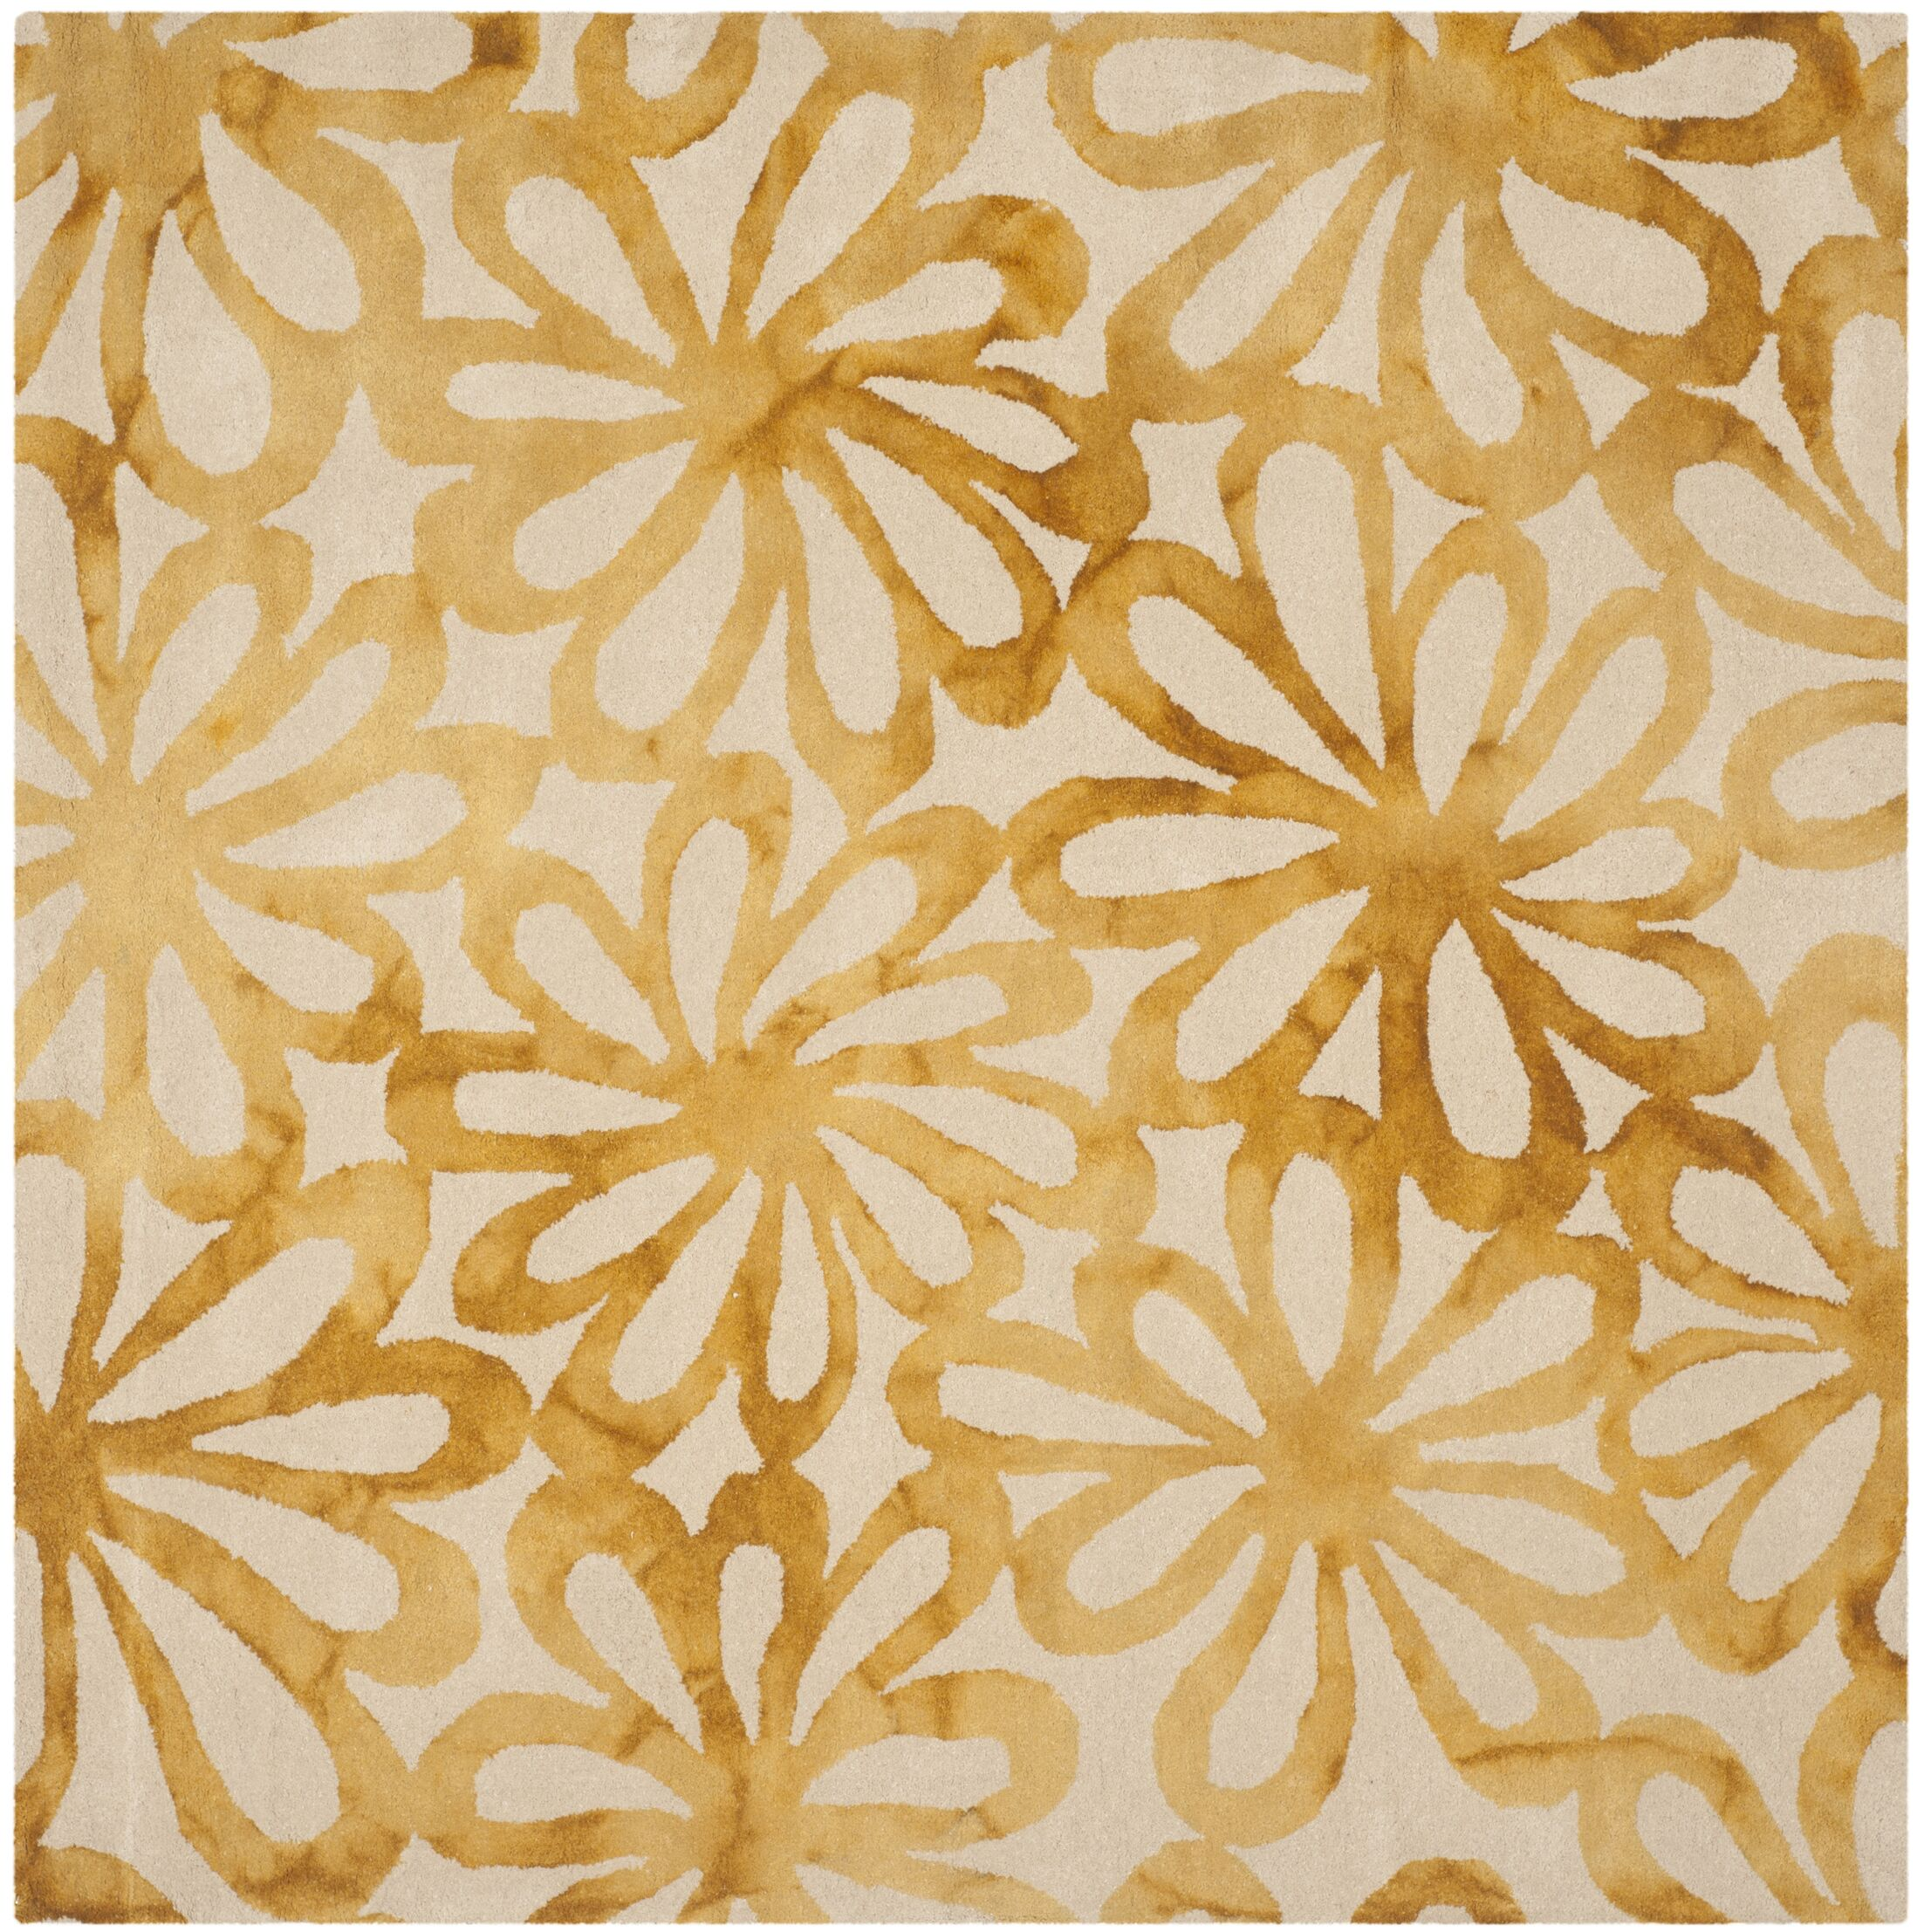 Hand-Tufted Beige & Gold Area Rug Rug Size: Square 5'